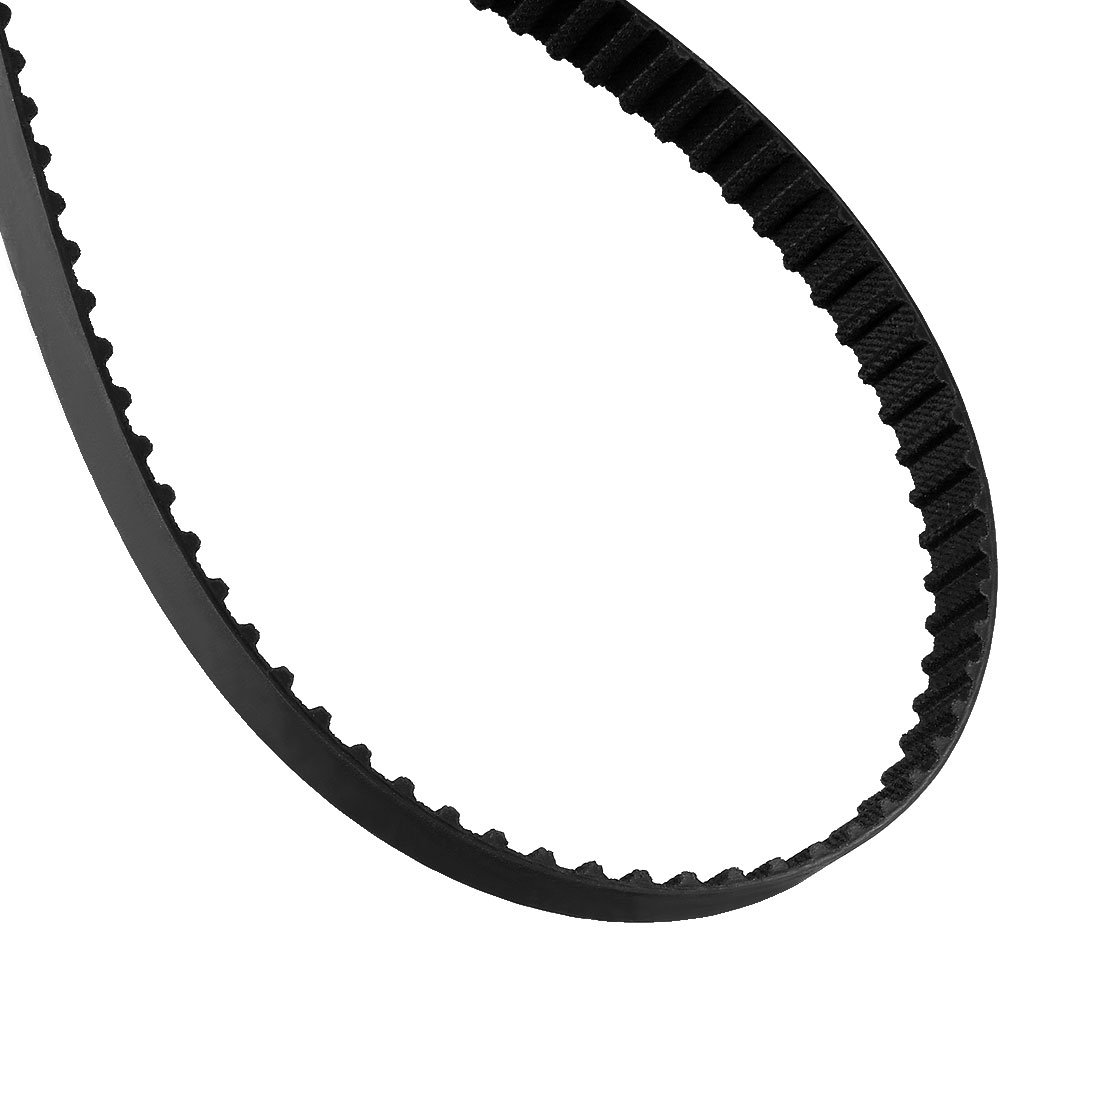 uxcell 278XL 137 Teeth 10mm Width 5.08mm Pitch Stepper Motor Rubber Timing Belt Black a17041800ux2130